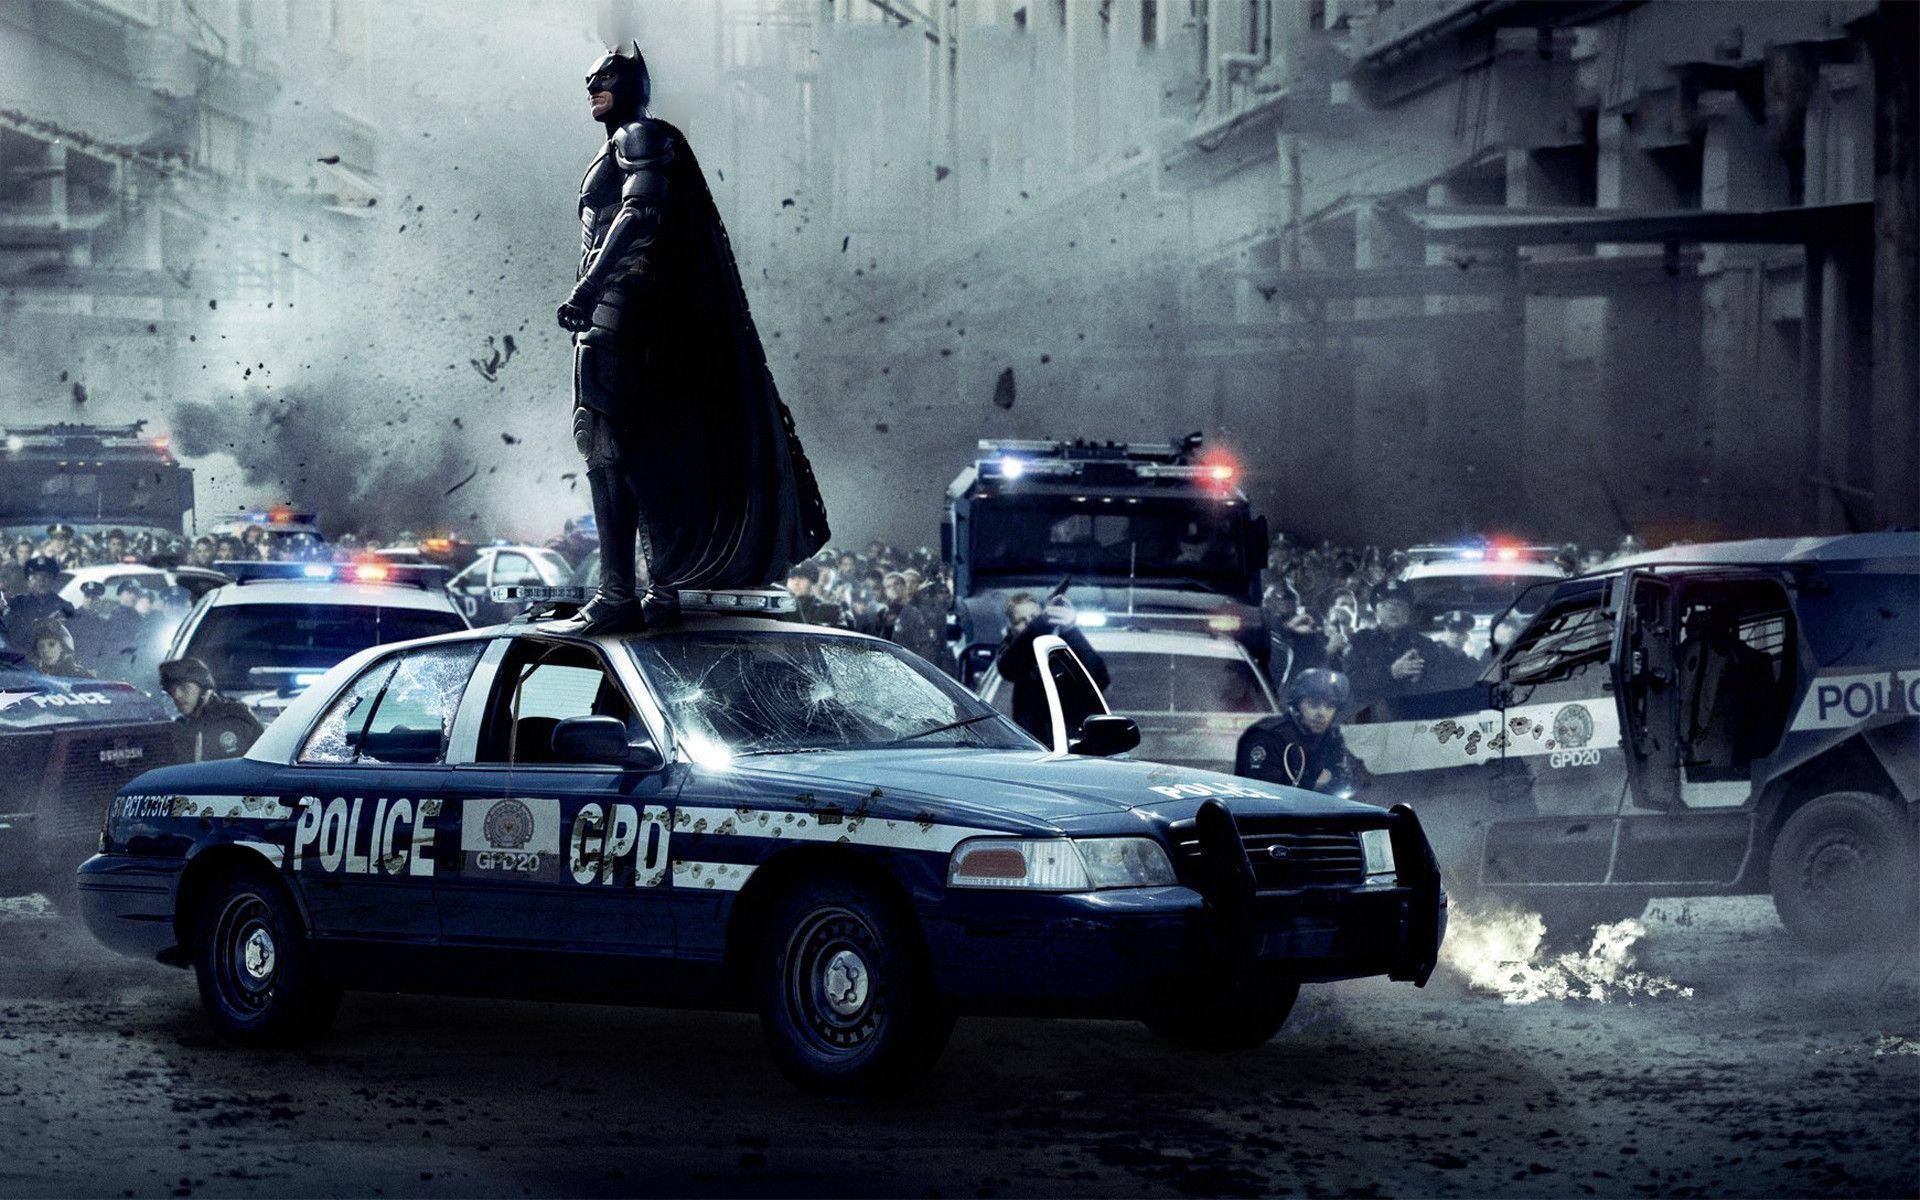 160 The Dark Knight Rises Wallpapers | The Dark Knight Rises ...